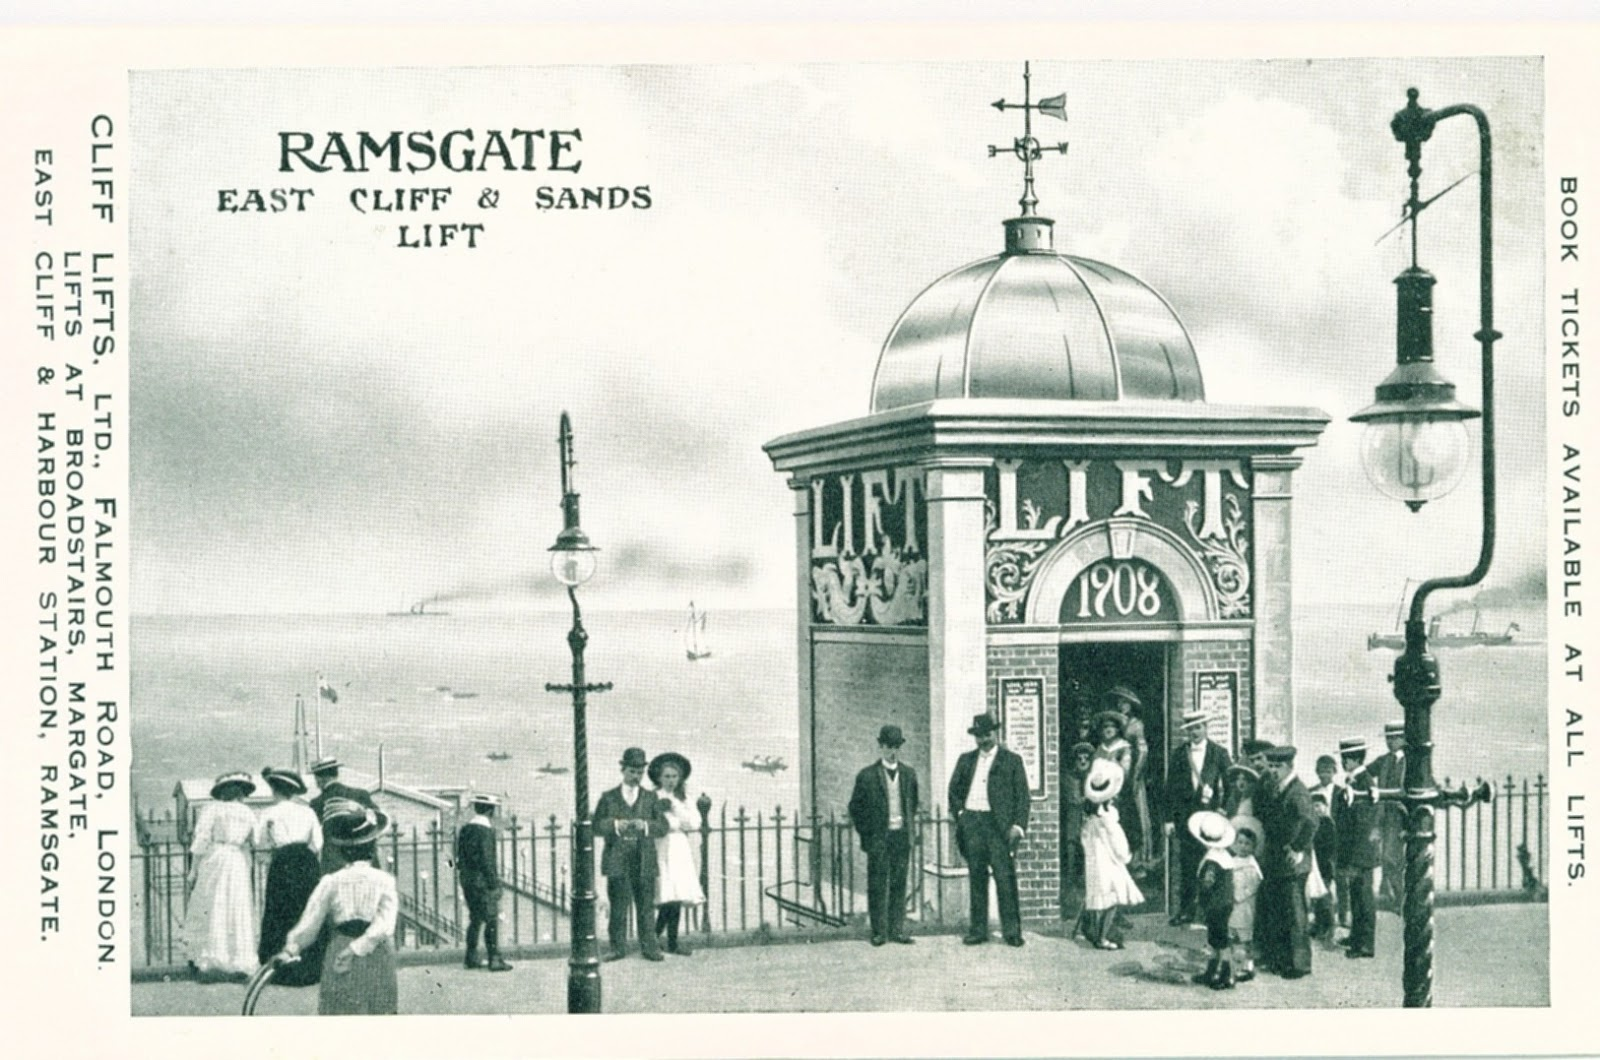 Thanetonline Some Thoughts On Child Neglect And Drunkenness In Ramsgate A Bit Of A Ramble A